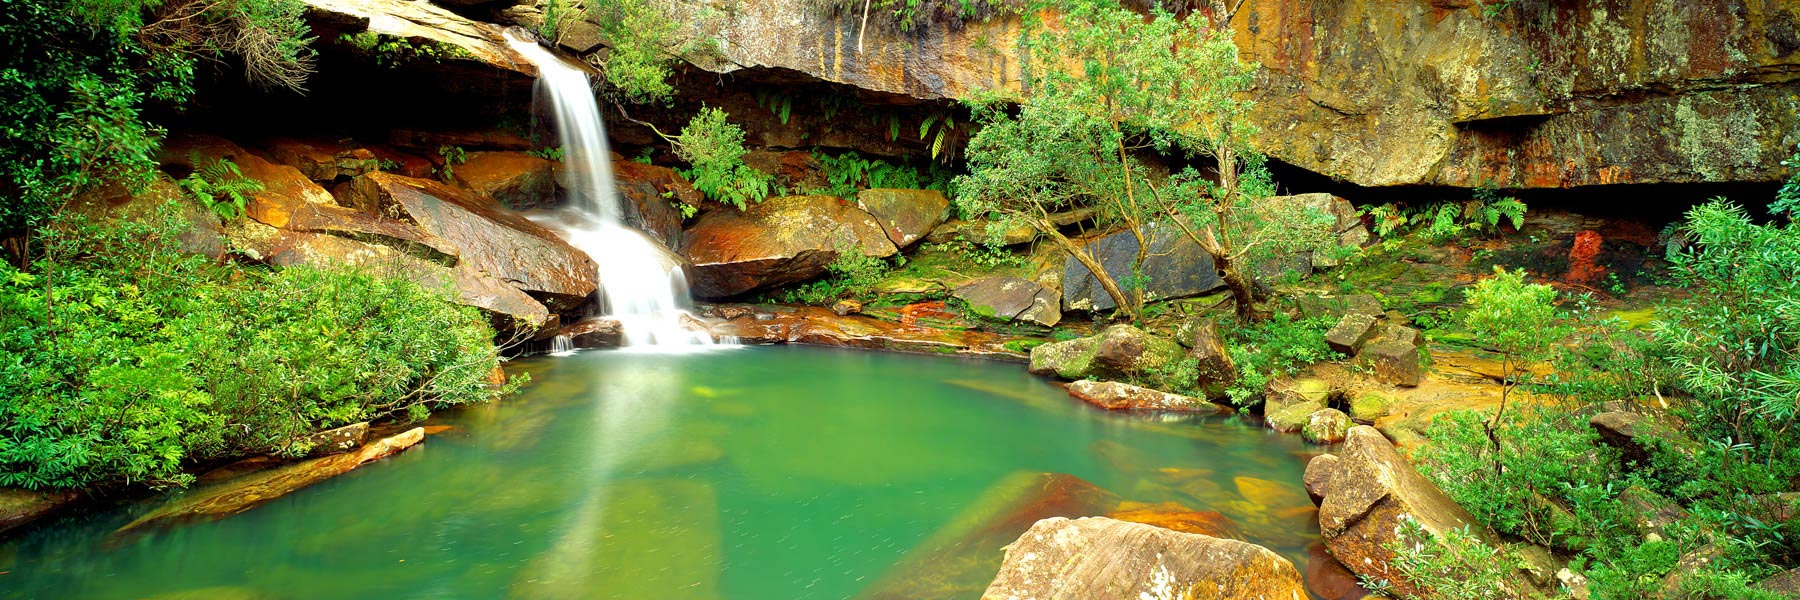 Upper Gledhill Falls flowing into a tranquil pool, NSW, Australia.